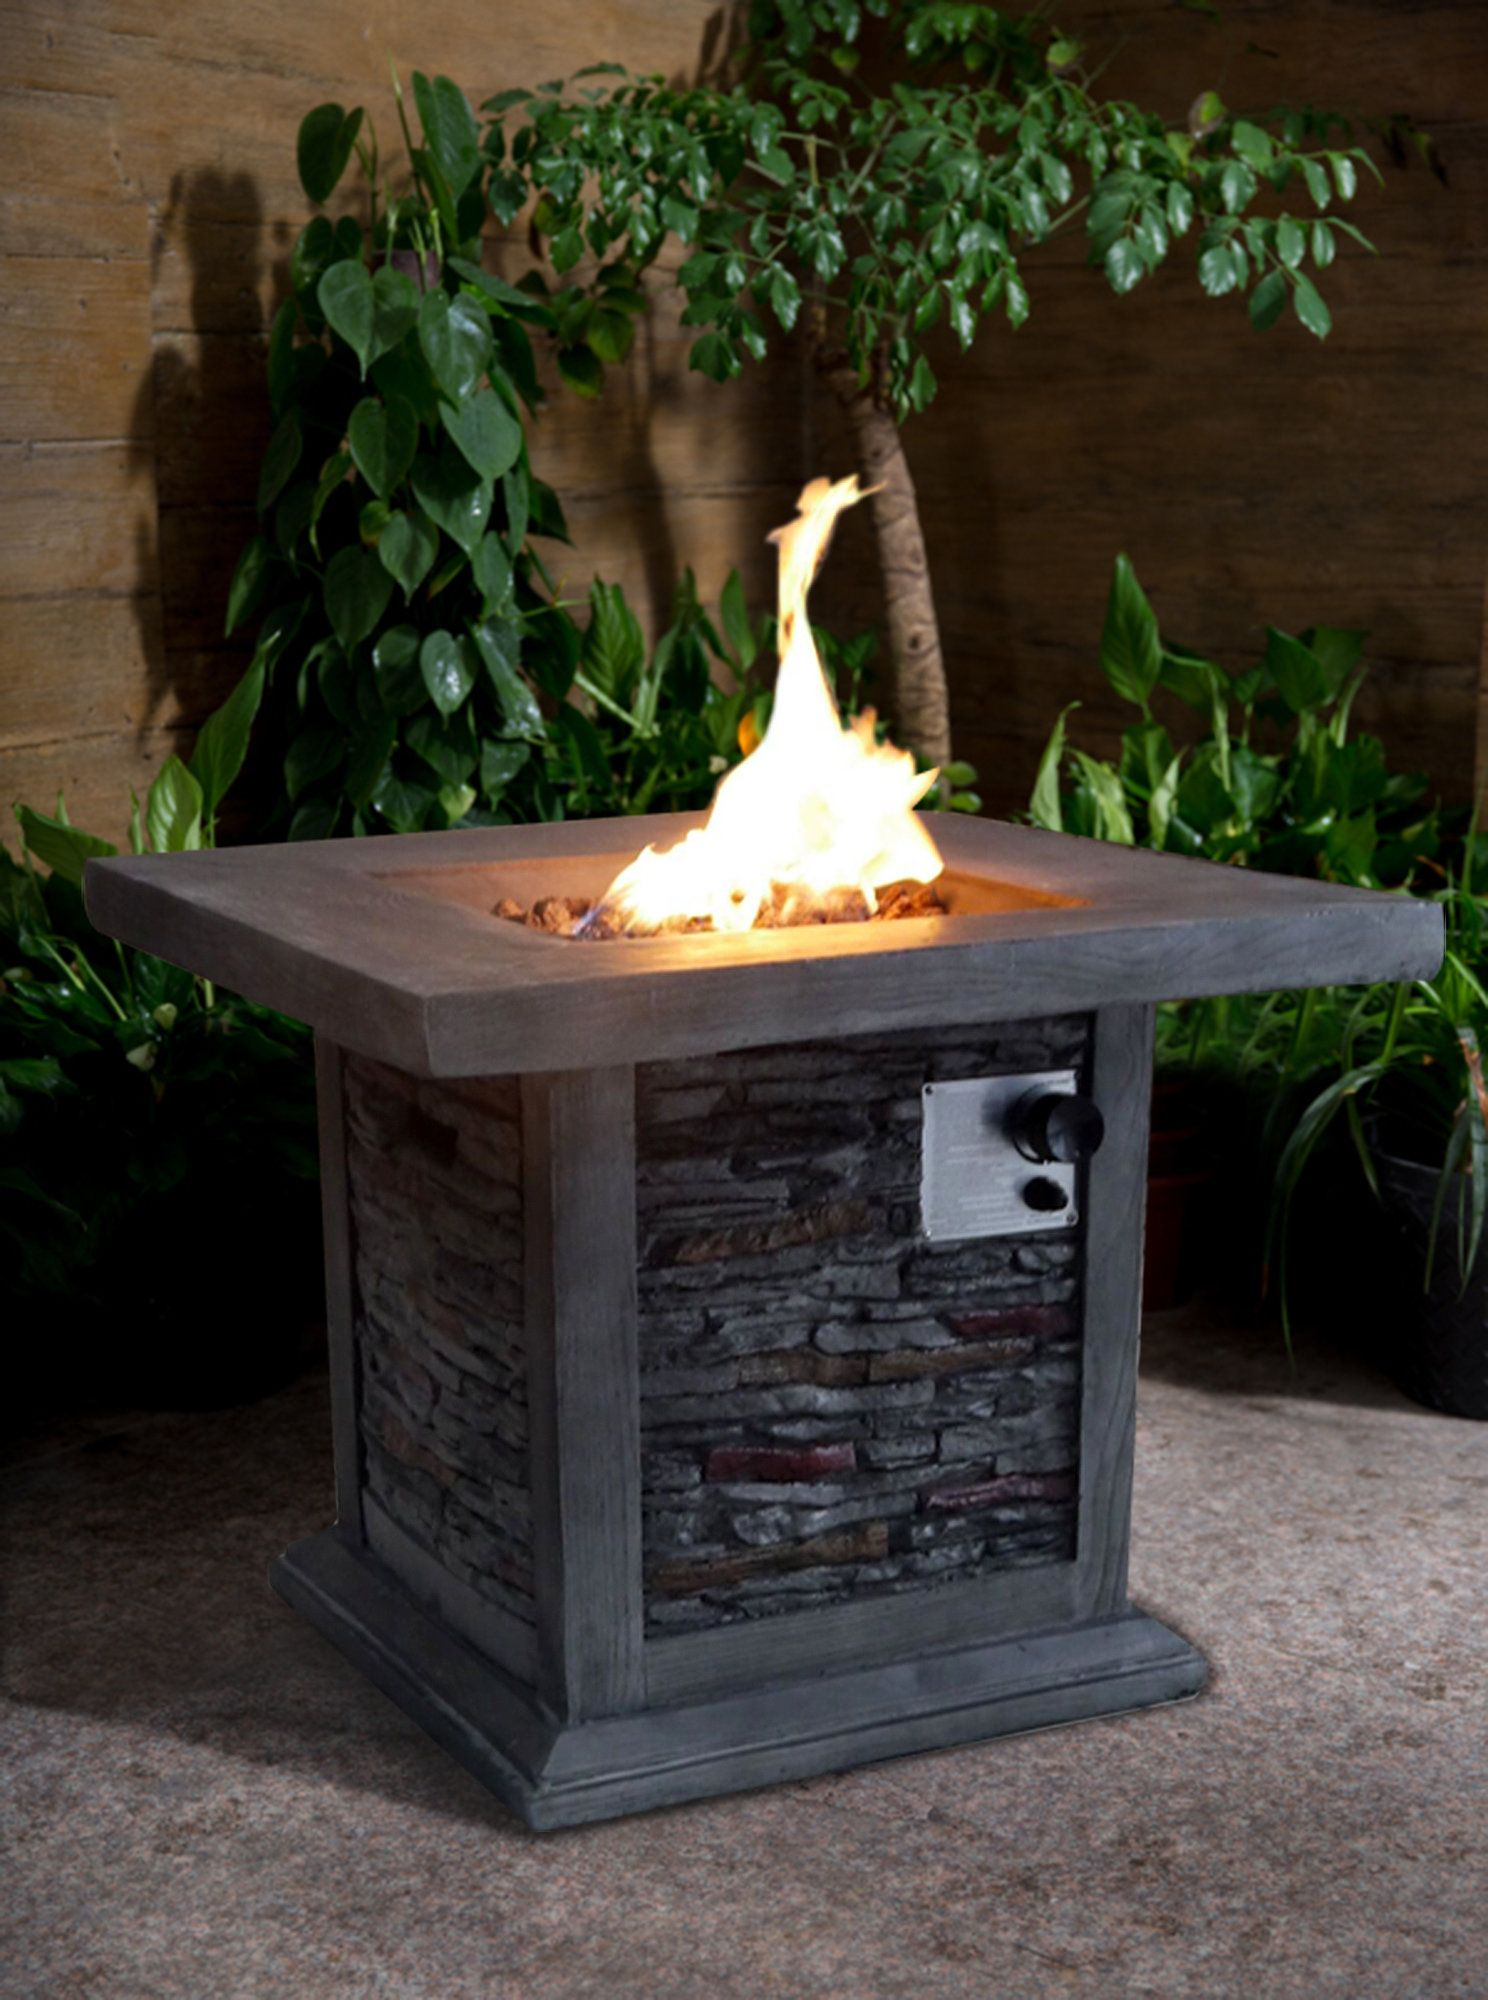 Guanacaste square mgo propane gas fire pit products pinterest